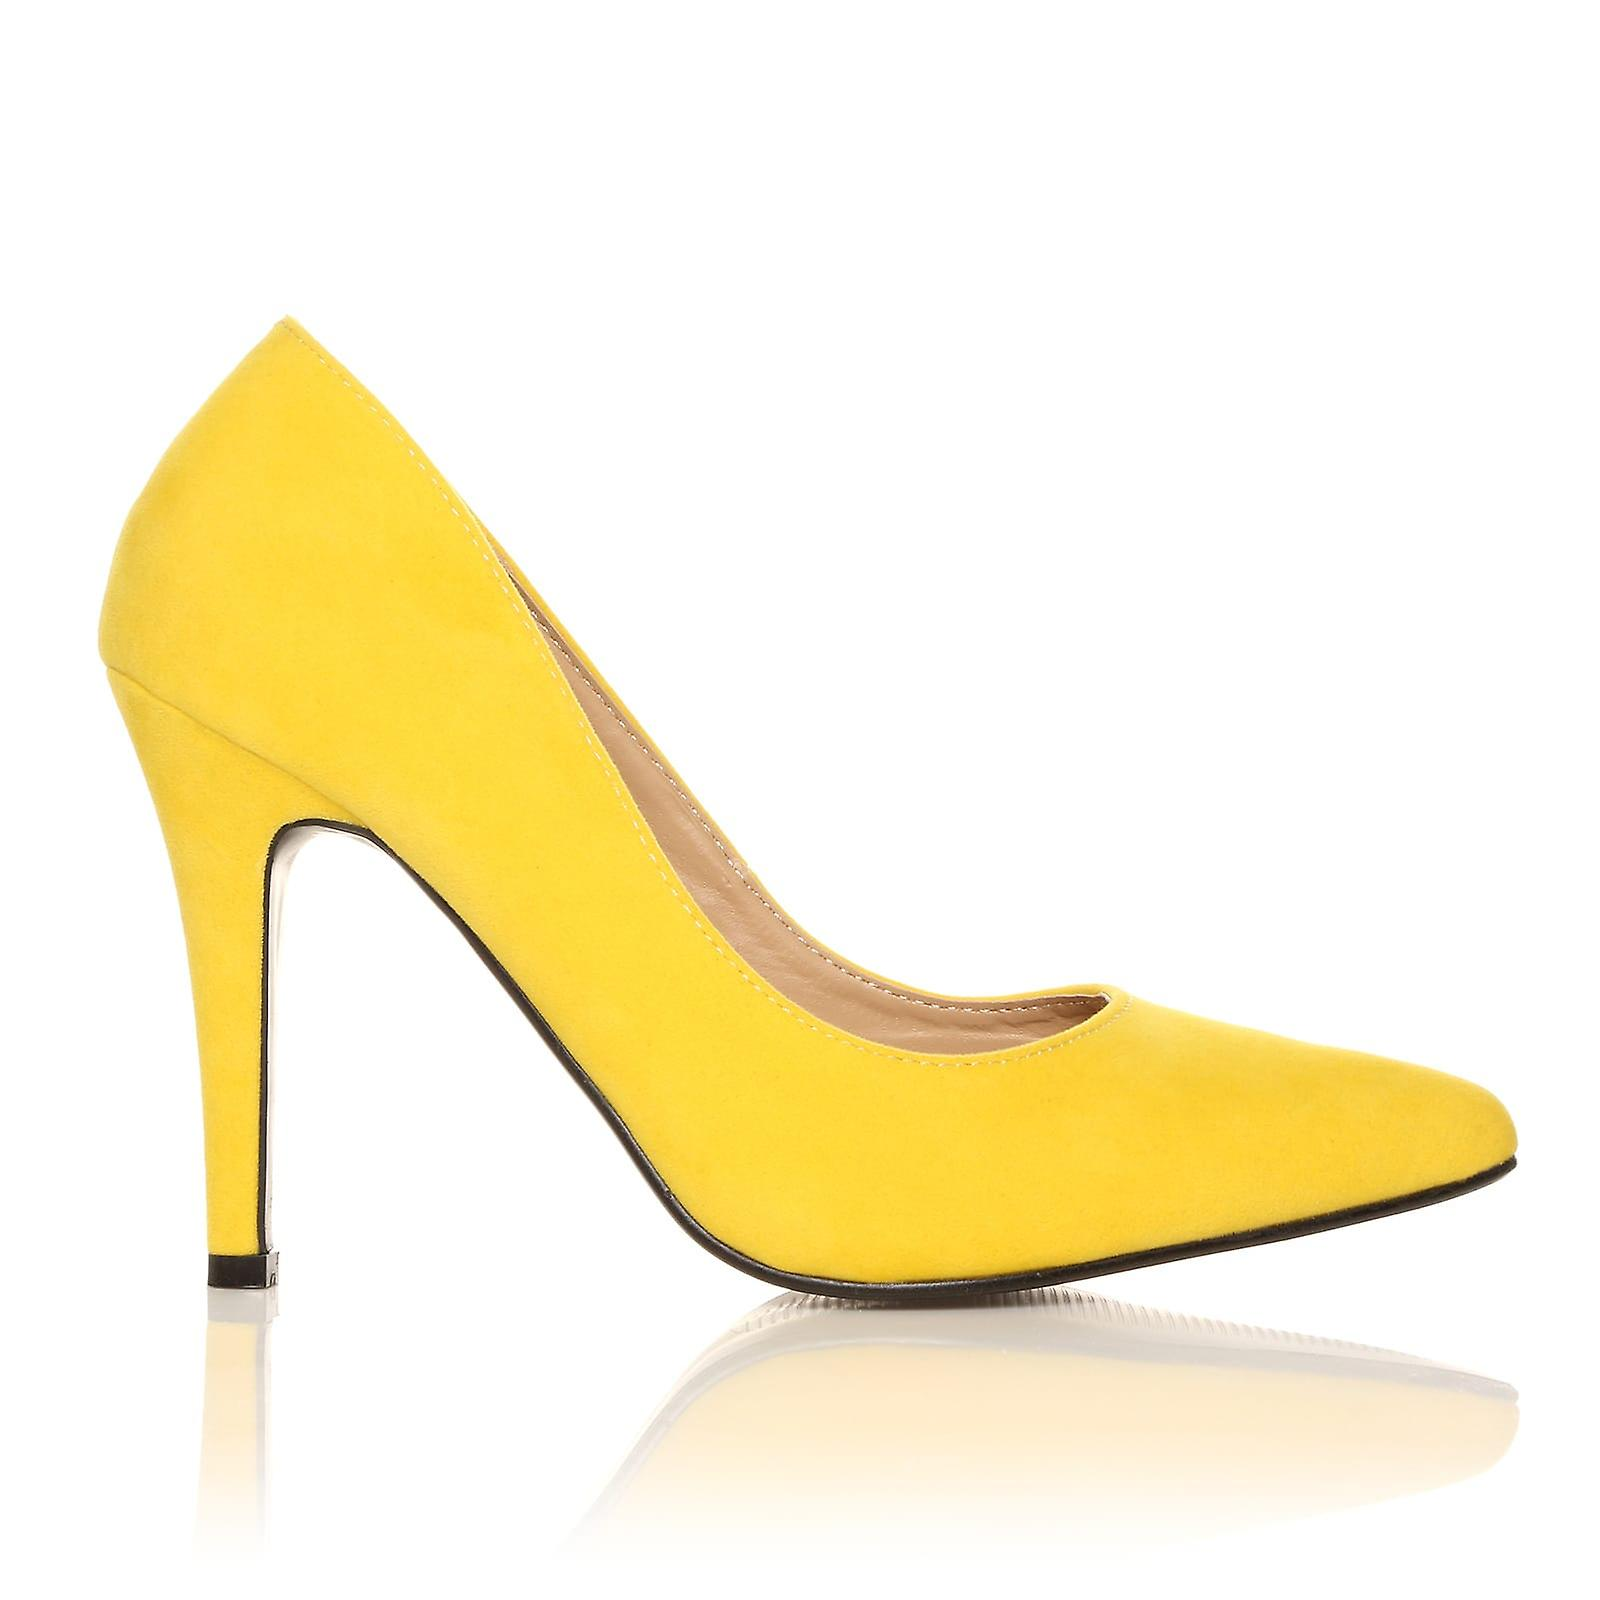 DARCY High Yellow Faux Suede Stilleto High DARCY Heel Pointed Court Shoes e8cc0e